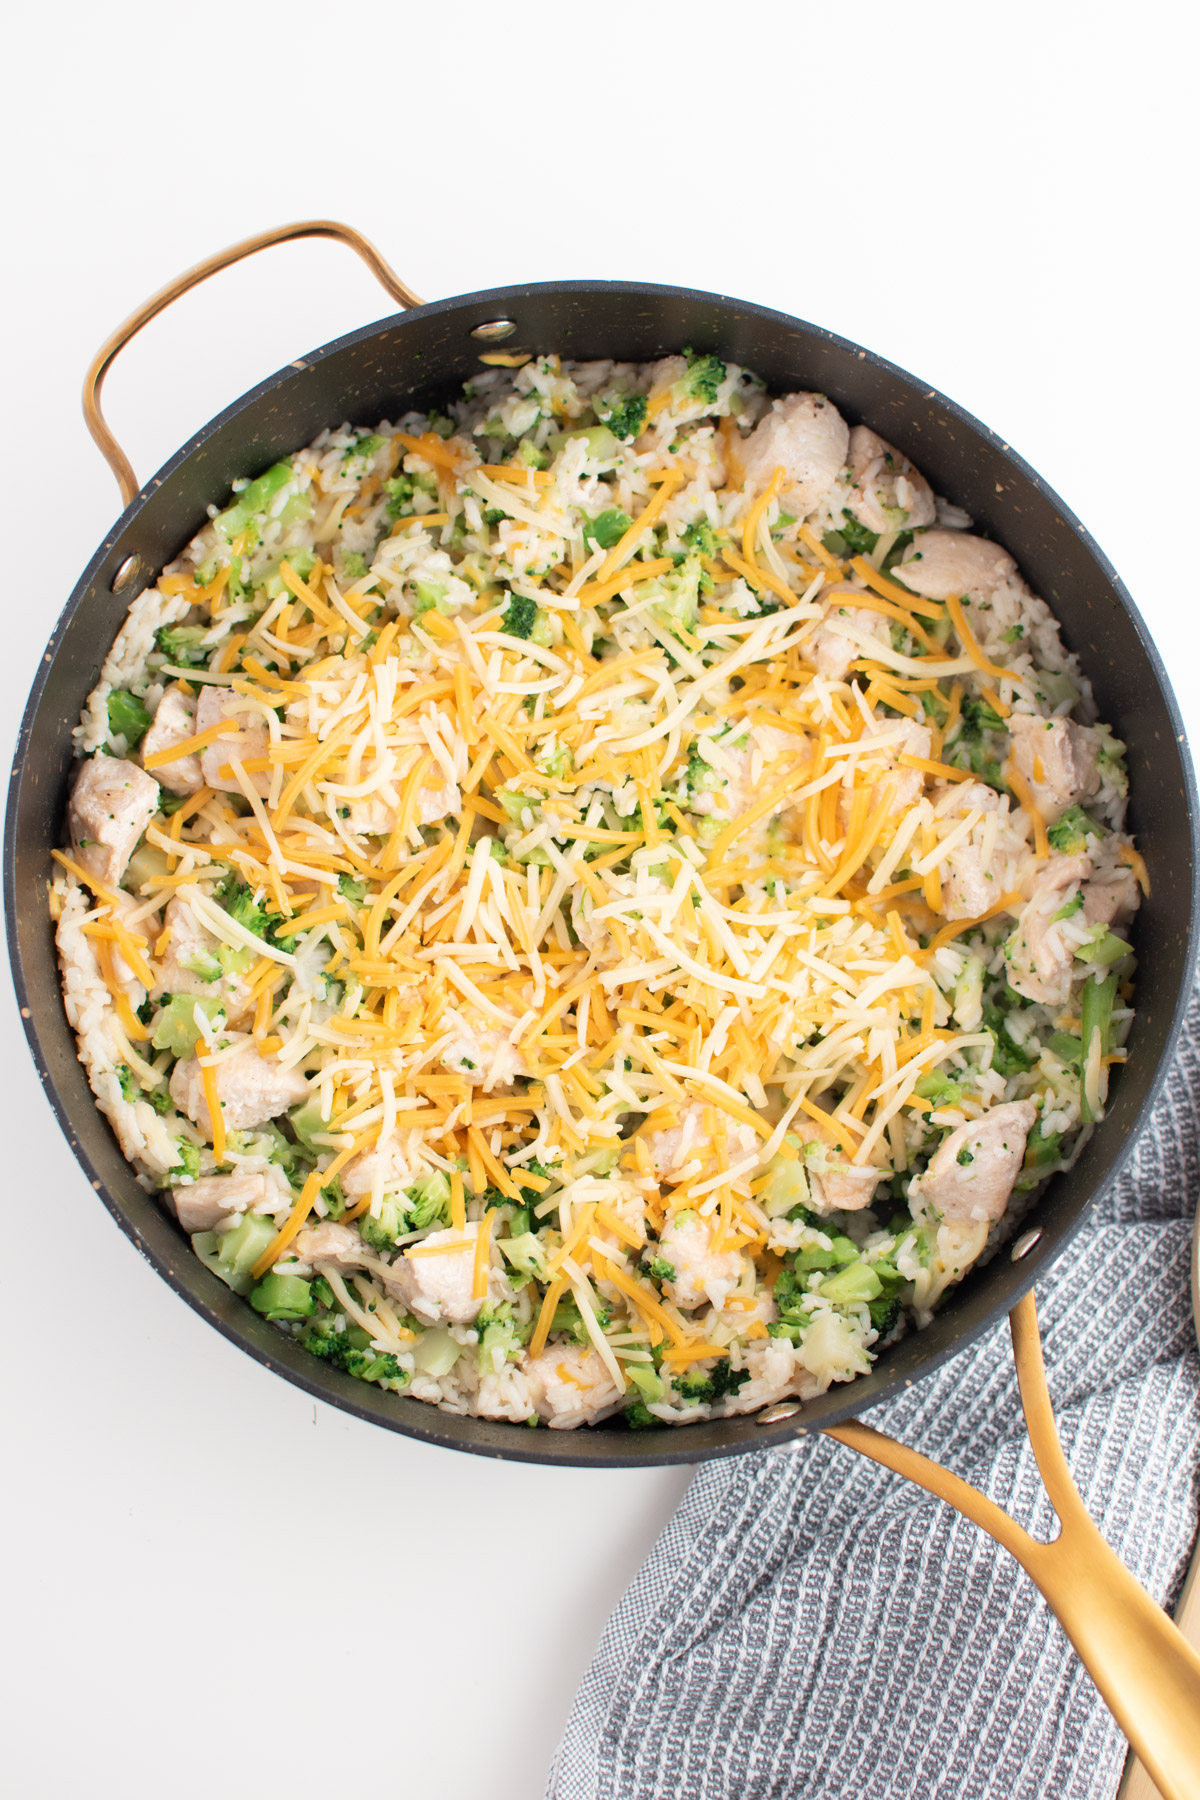 Shredded Colby jack cheese sprinkled over cooked chicken and broccoli in skillet.